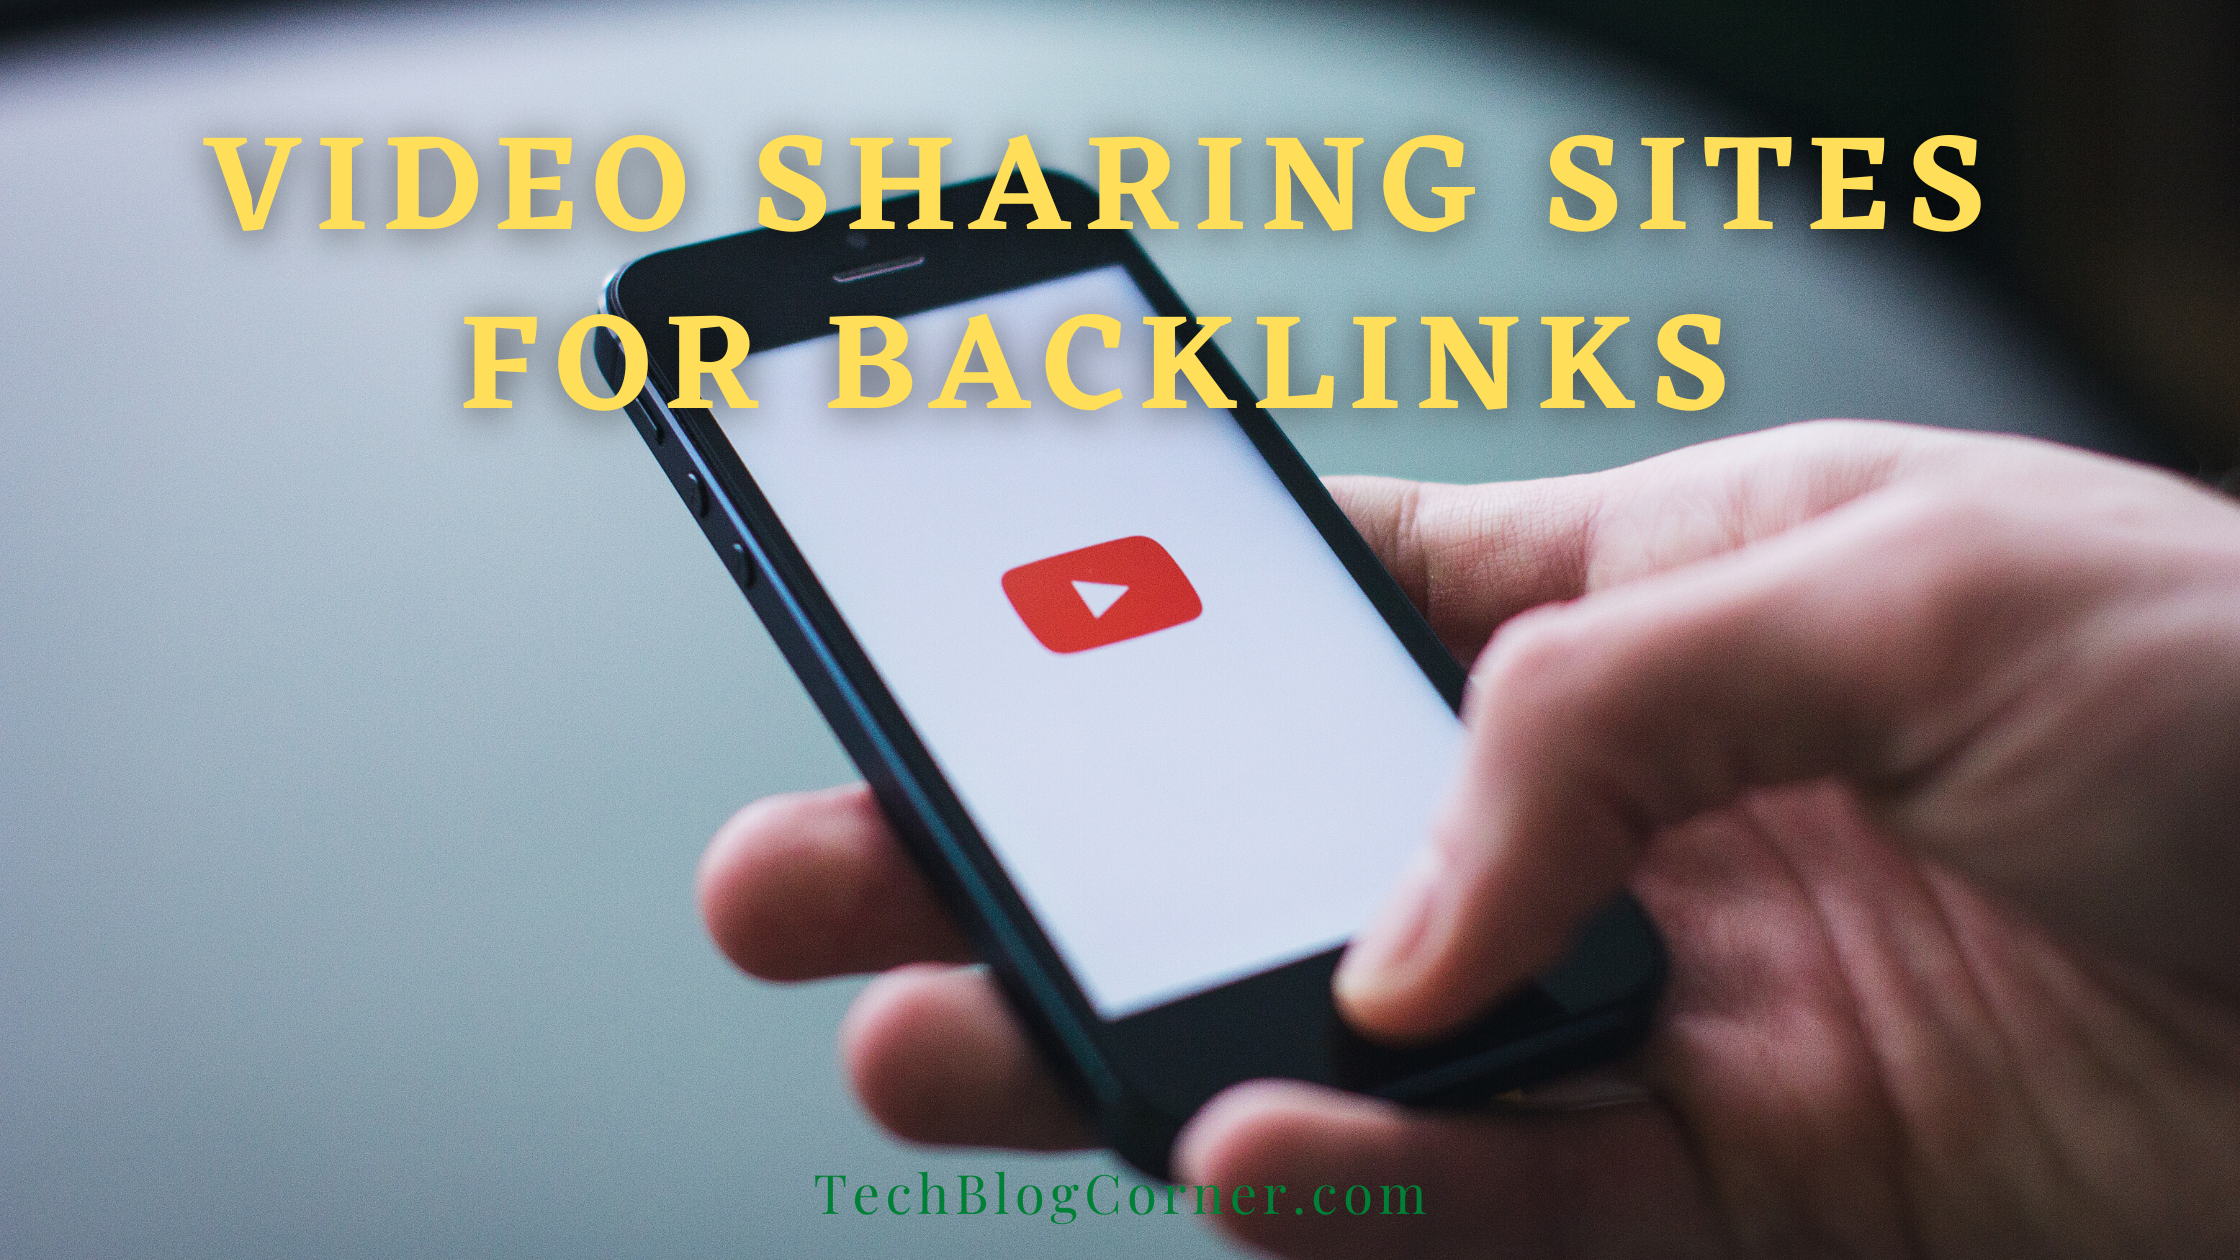 Video Sharing Sites for Backlinks